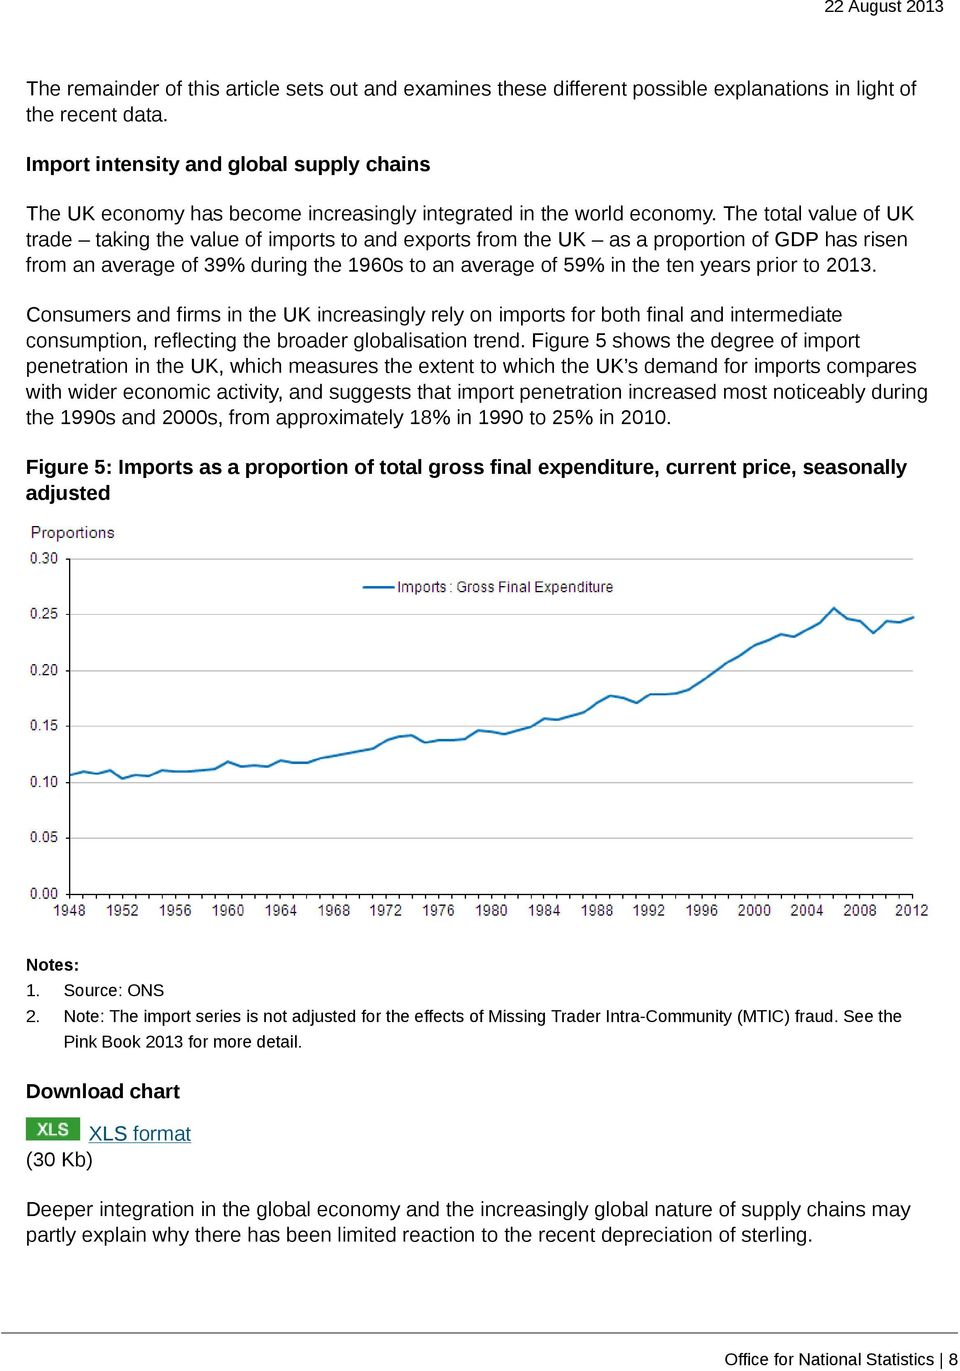 The total value of UK trade taking the value of imports to and exports from the UK as a proportion of GDP has risen from an average of 39% during the 1960s to an average of 59% in the ten years prior